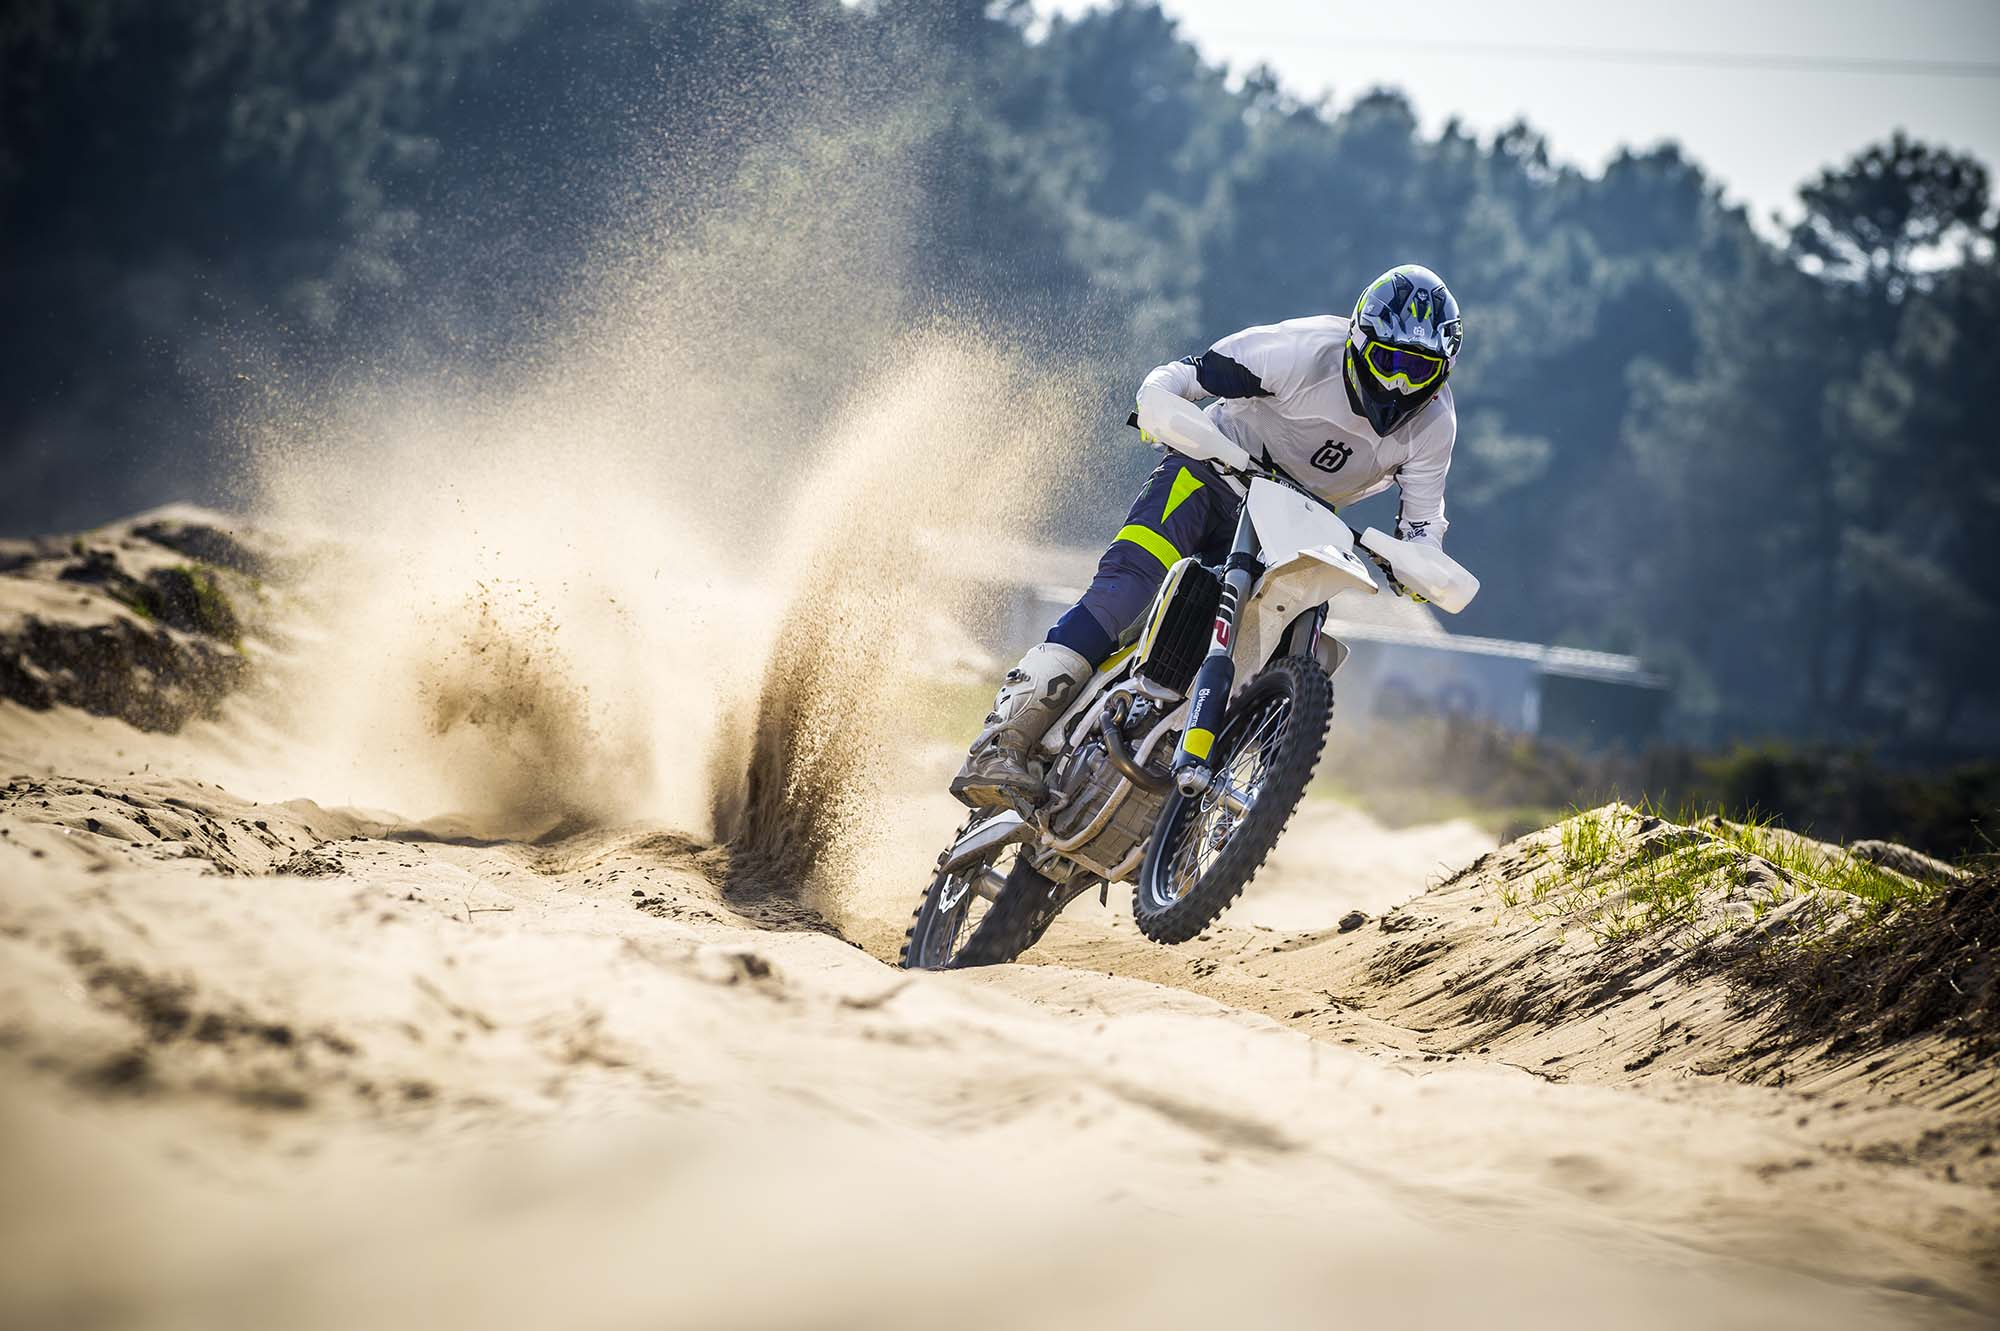 husqvarna 39 s 2017 motocross line features traction control. Black Bedroom Furniture Sets. Home Design Ideas